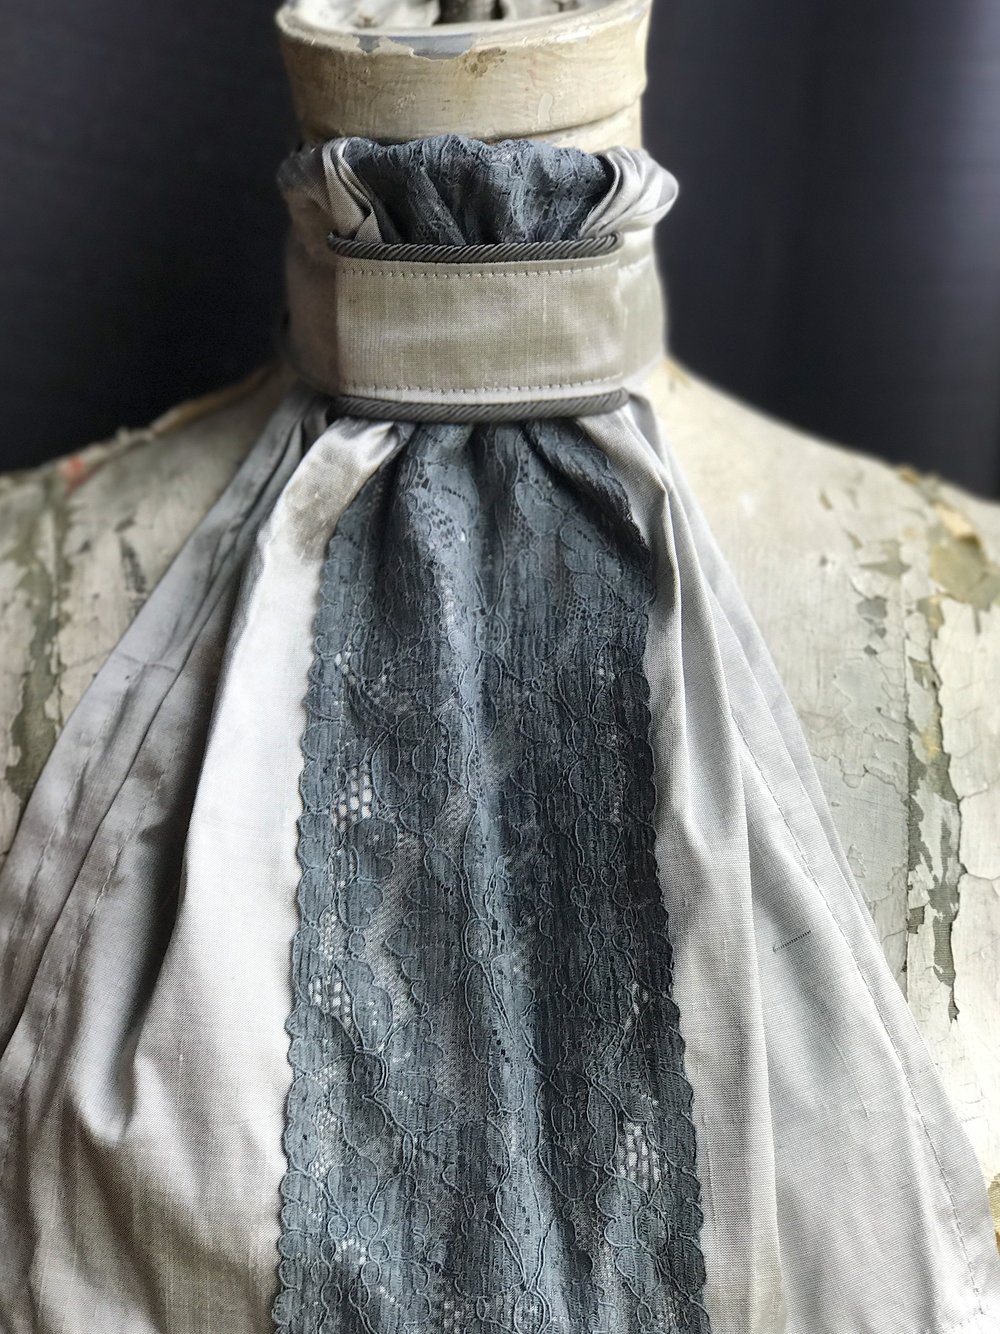 Gray silk tie with gray Italian lace running vertically for an elegant look and feel.